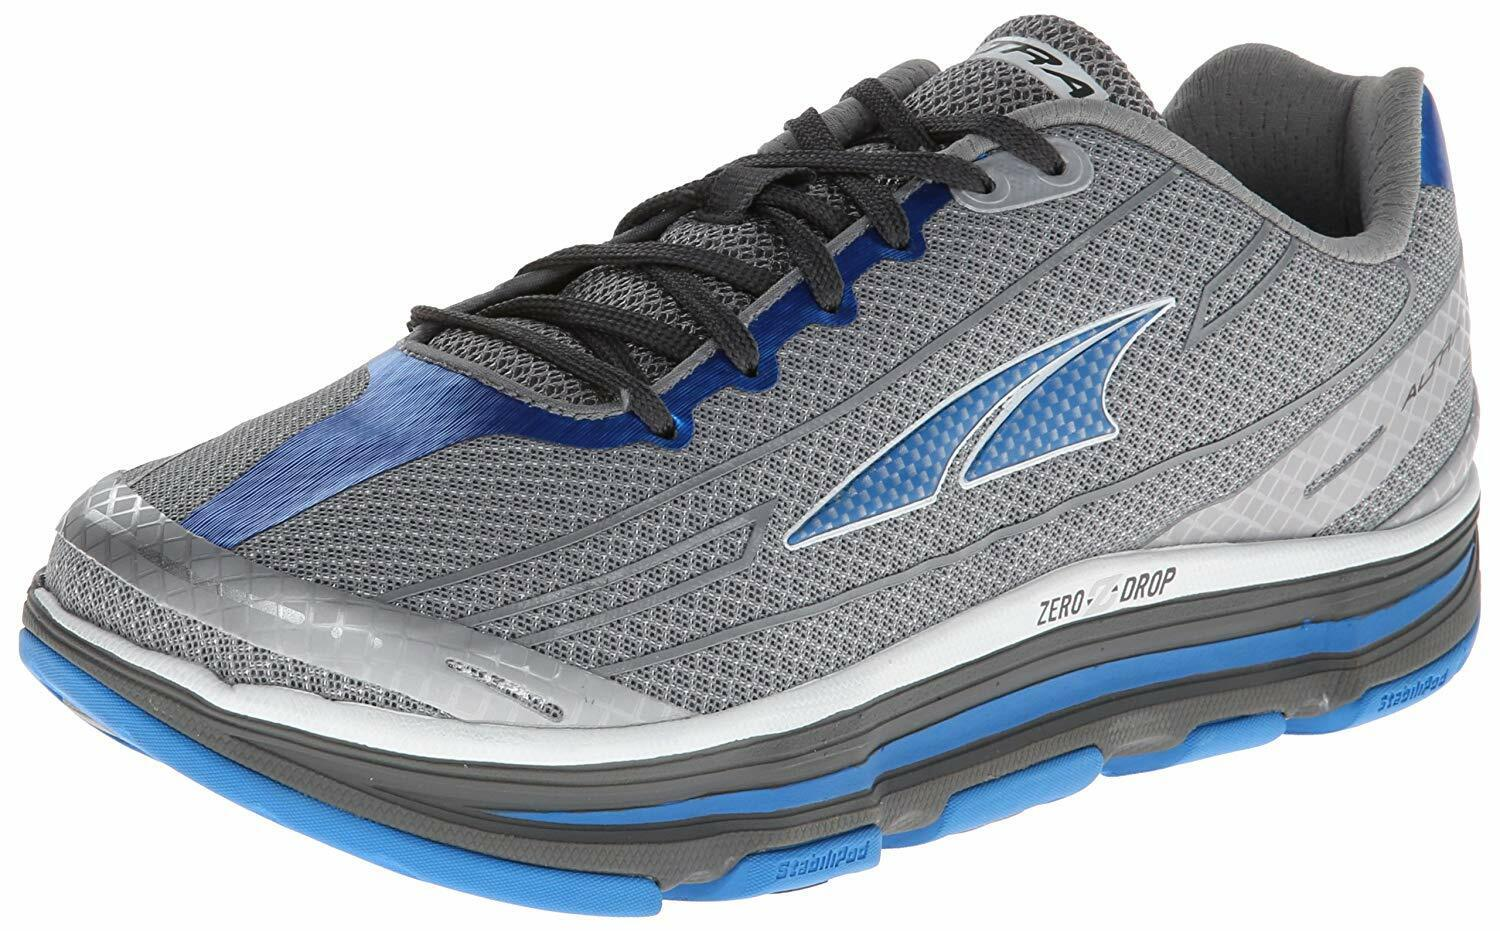 ALTRA REPETITION ZERO DROP RUNNING SHOESMENS SIZE US 8M   NEW